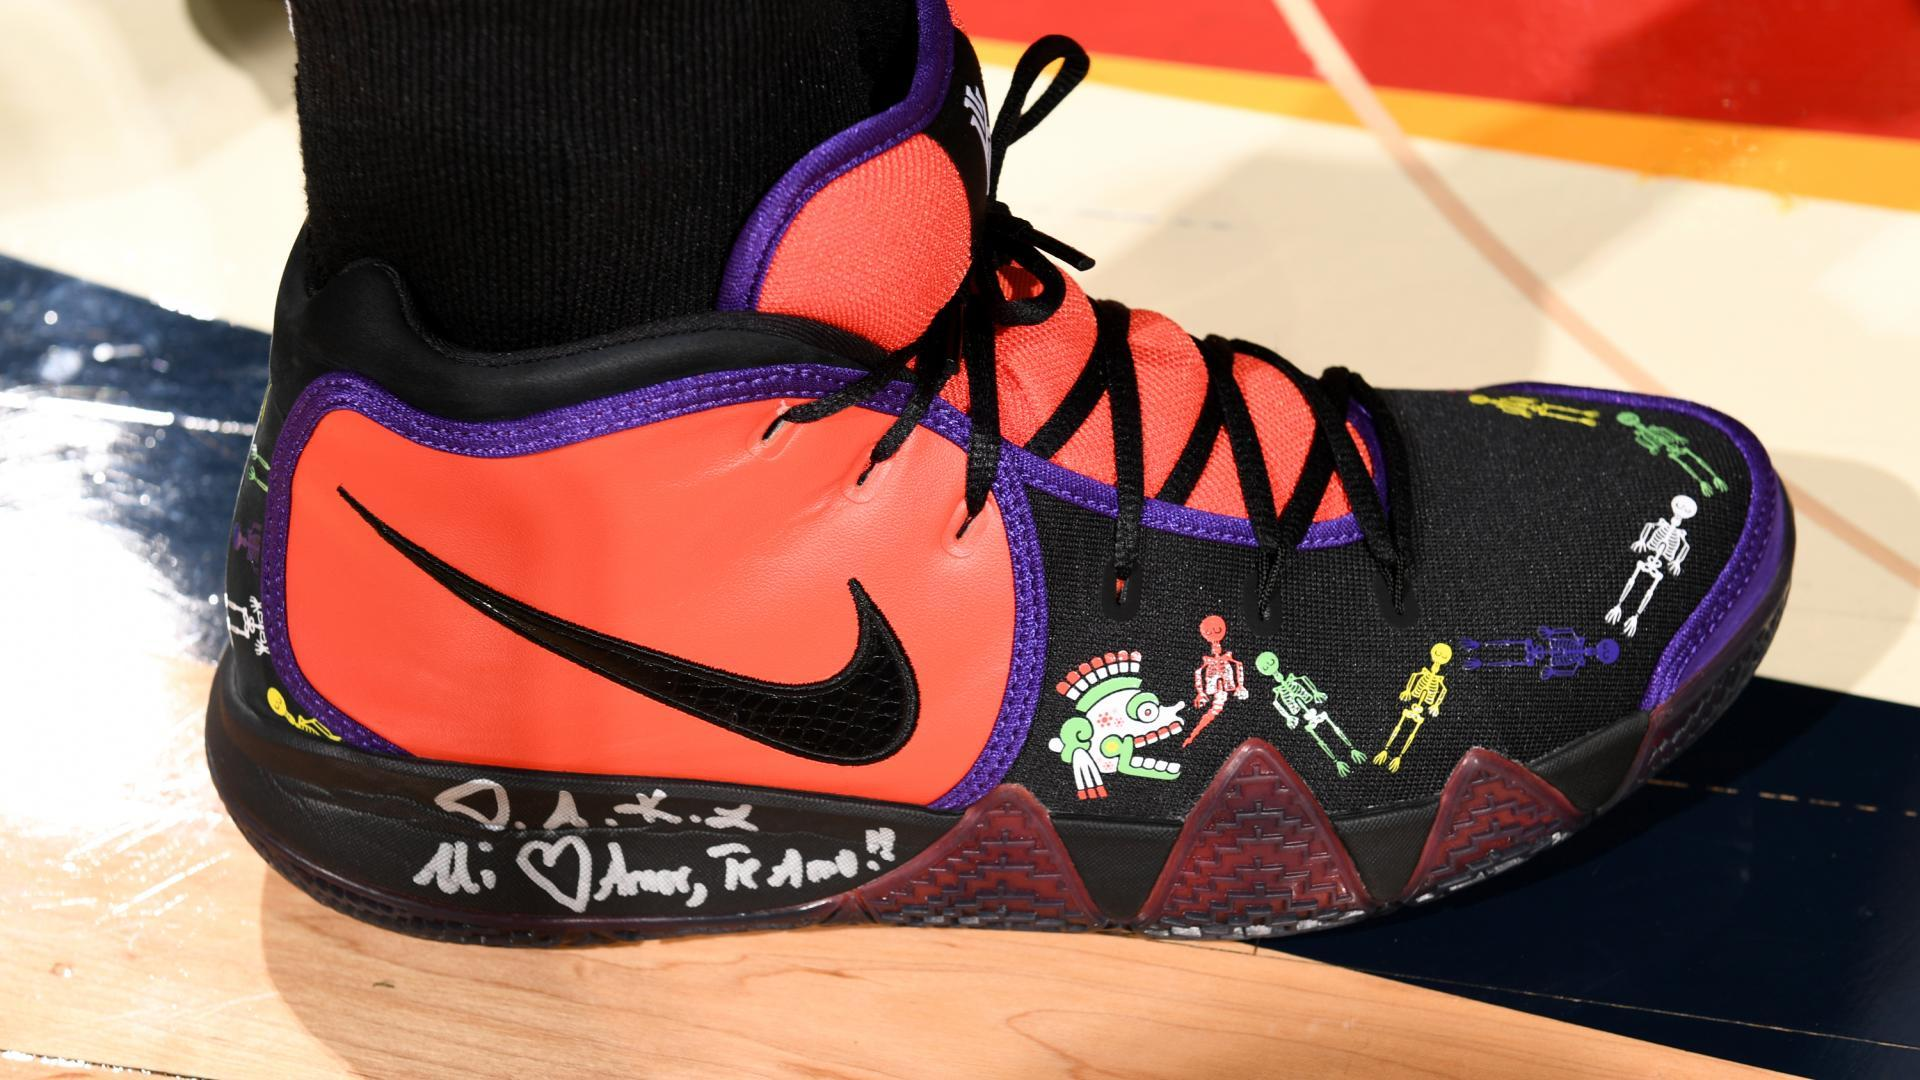 6c60721f56b937 Kyrie Irving hit the court in a special edition of the Nike Kyrie 4s…